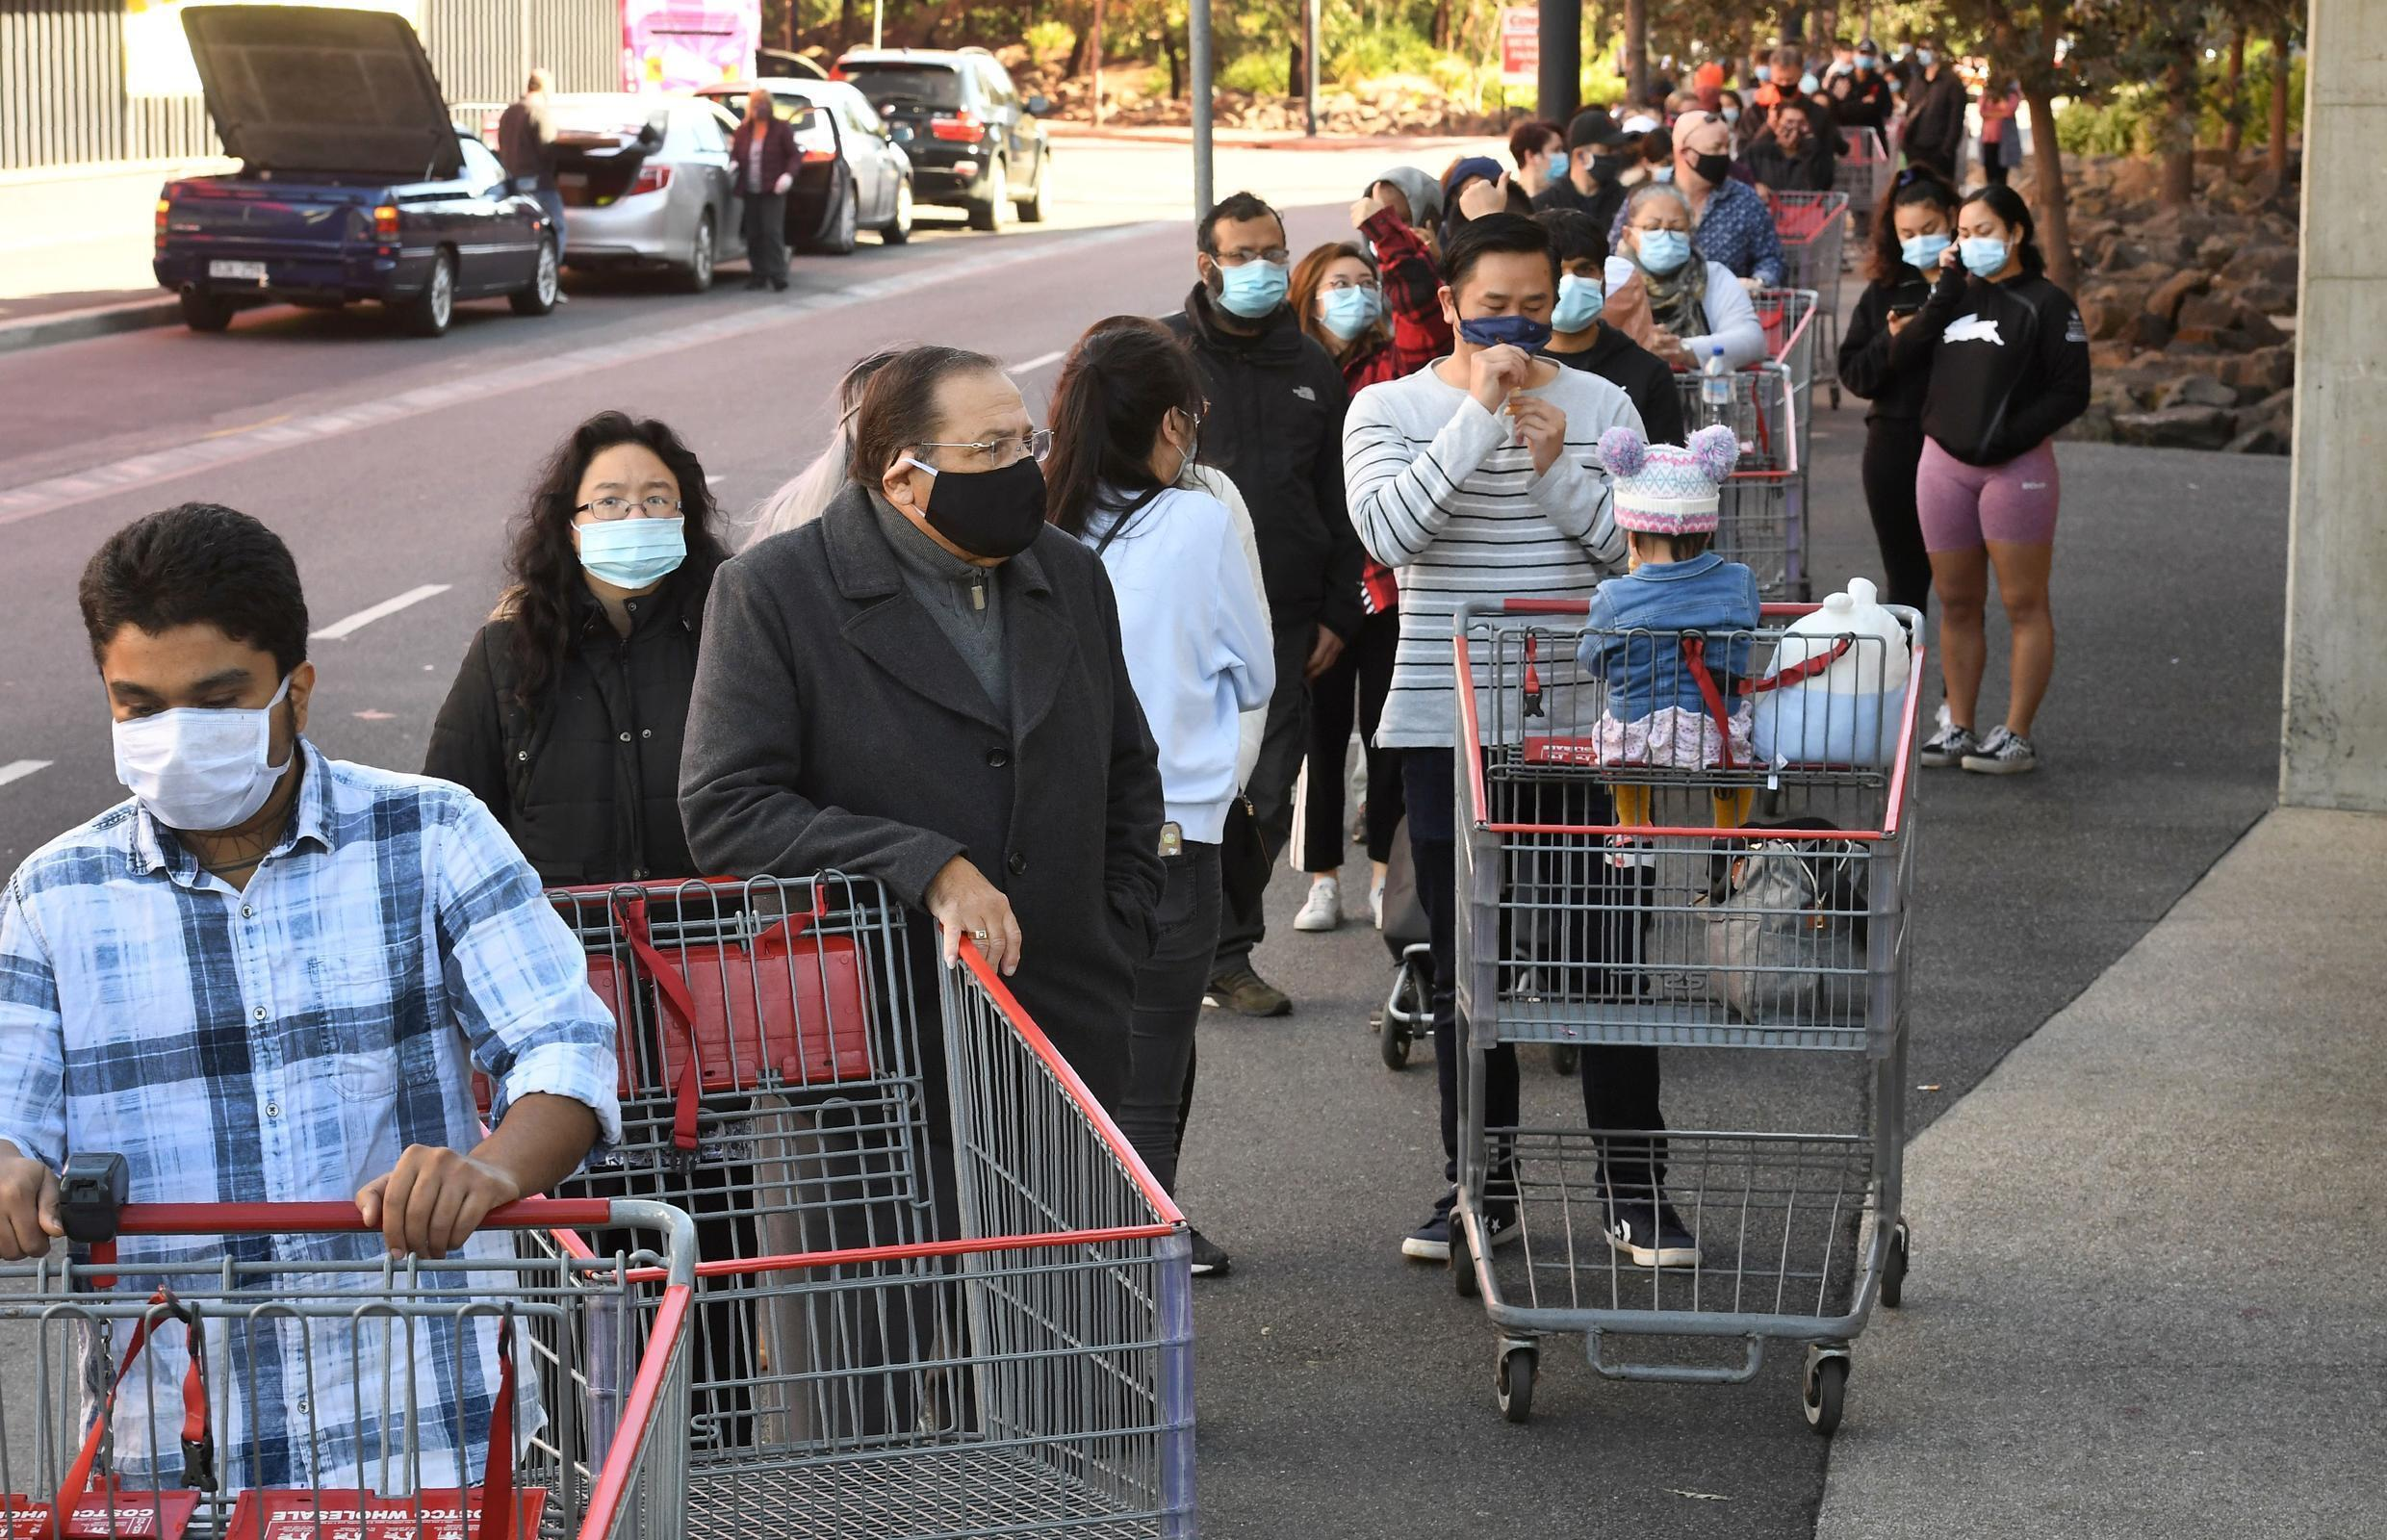 Residents of Melbourne city, Australia, queue up to buy groceries ahead stage 4 of a new lockdown against Covid-19, announced on 2 August 2020.